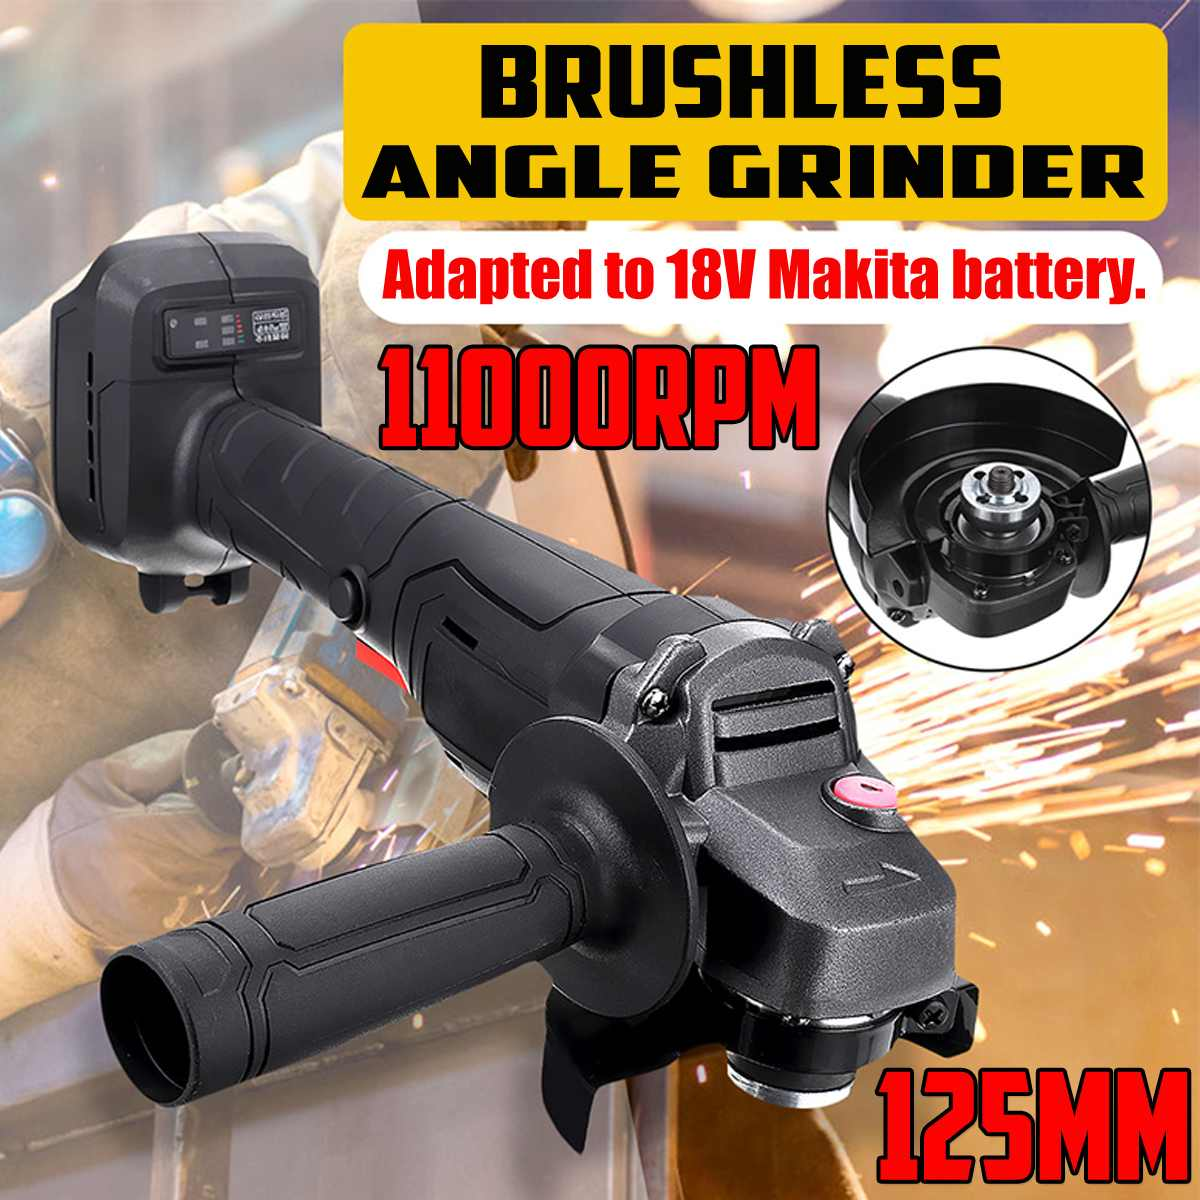 125mm Brushless Cordless Impact Angle Grinder without battery For MAKITA 18V POLISHER Electric Car Cutting Grinding Power tools